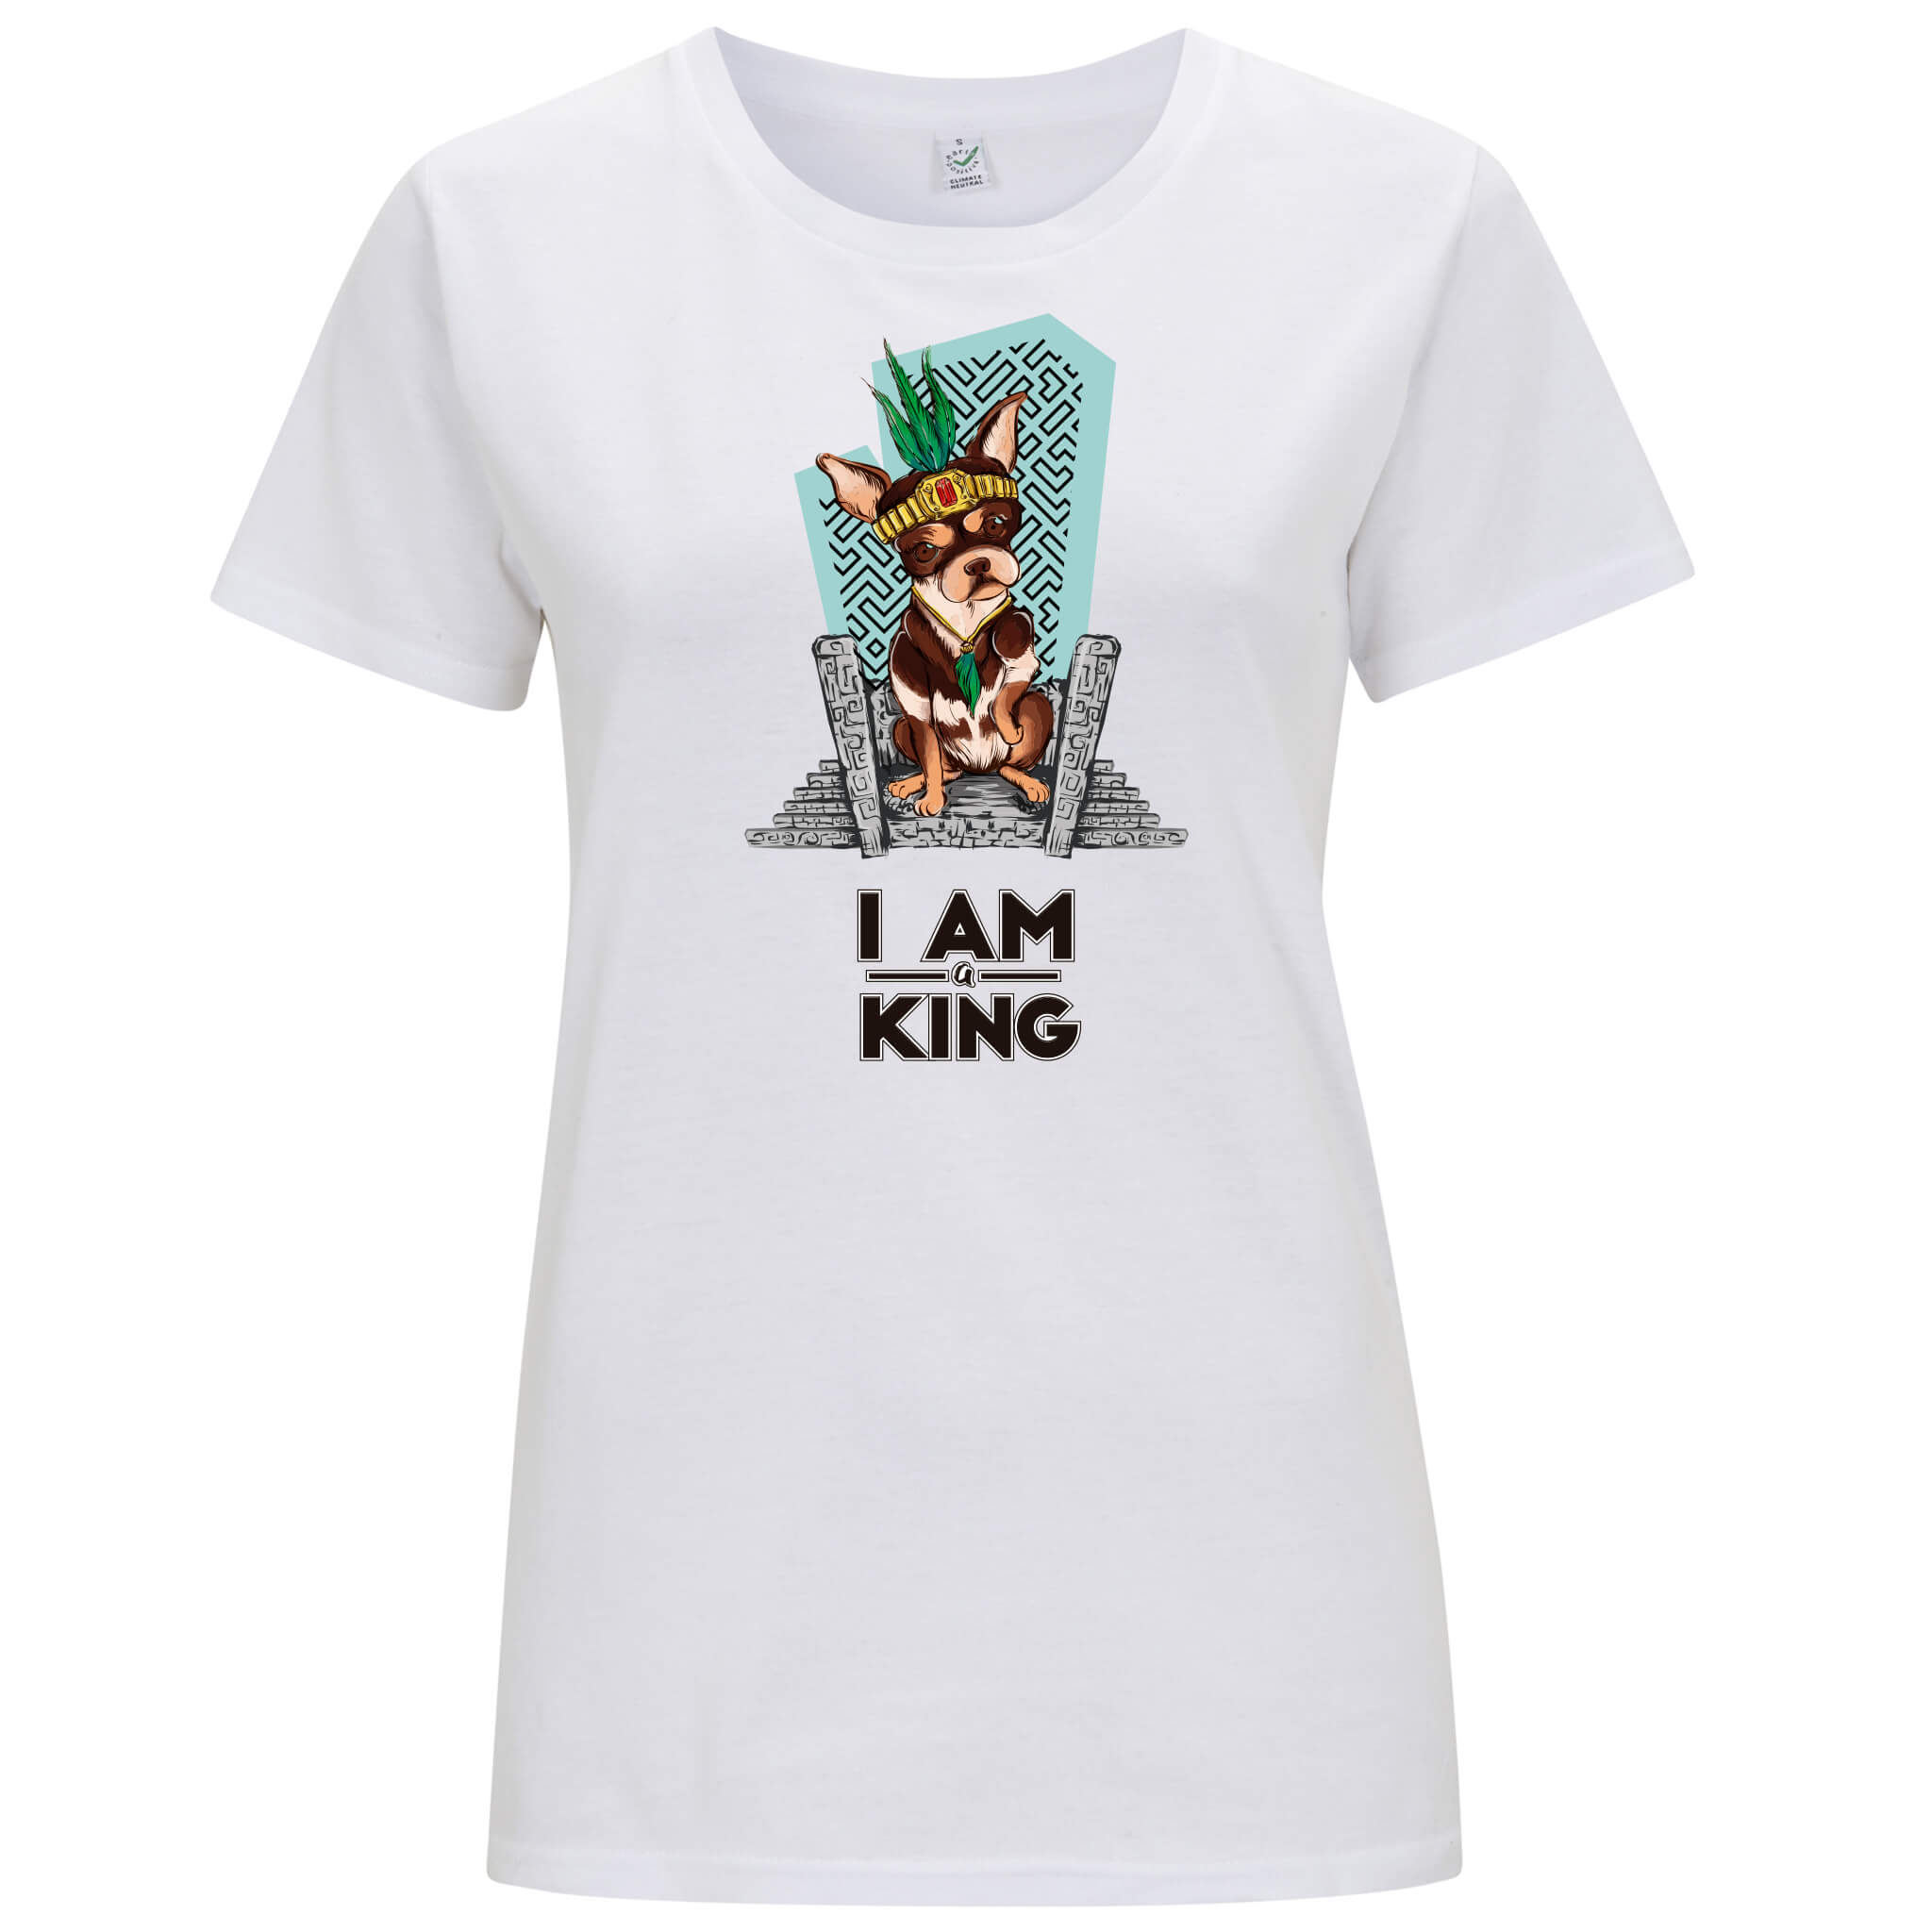 Chihuahua - T-shirt Donna - T-Shirt by Fol The Brand